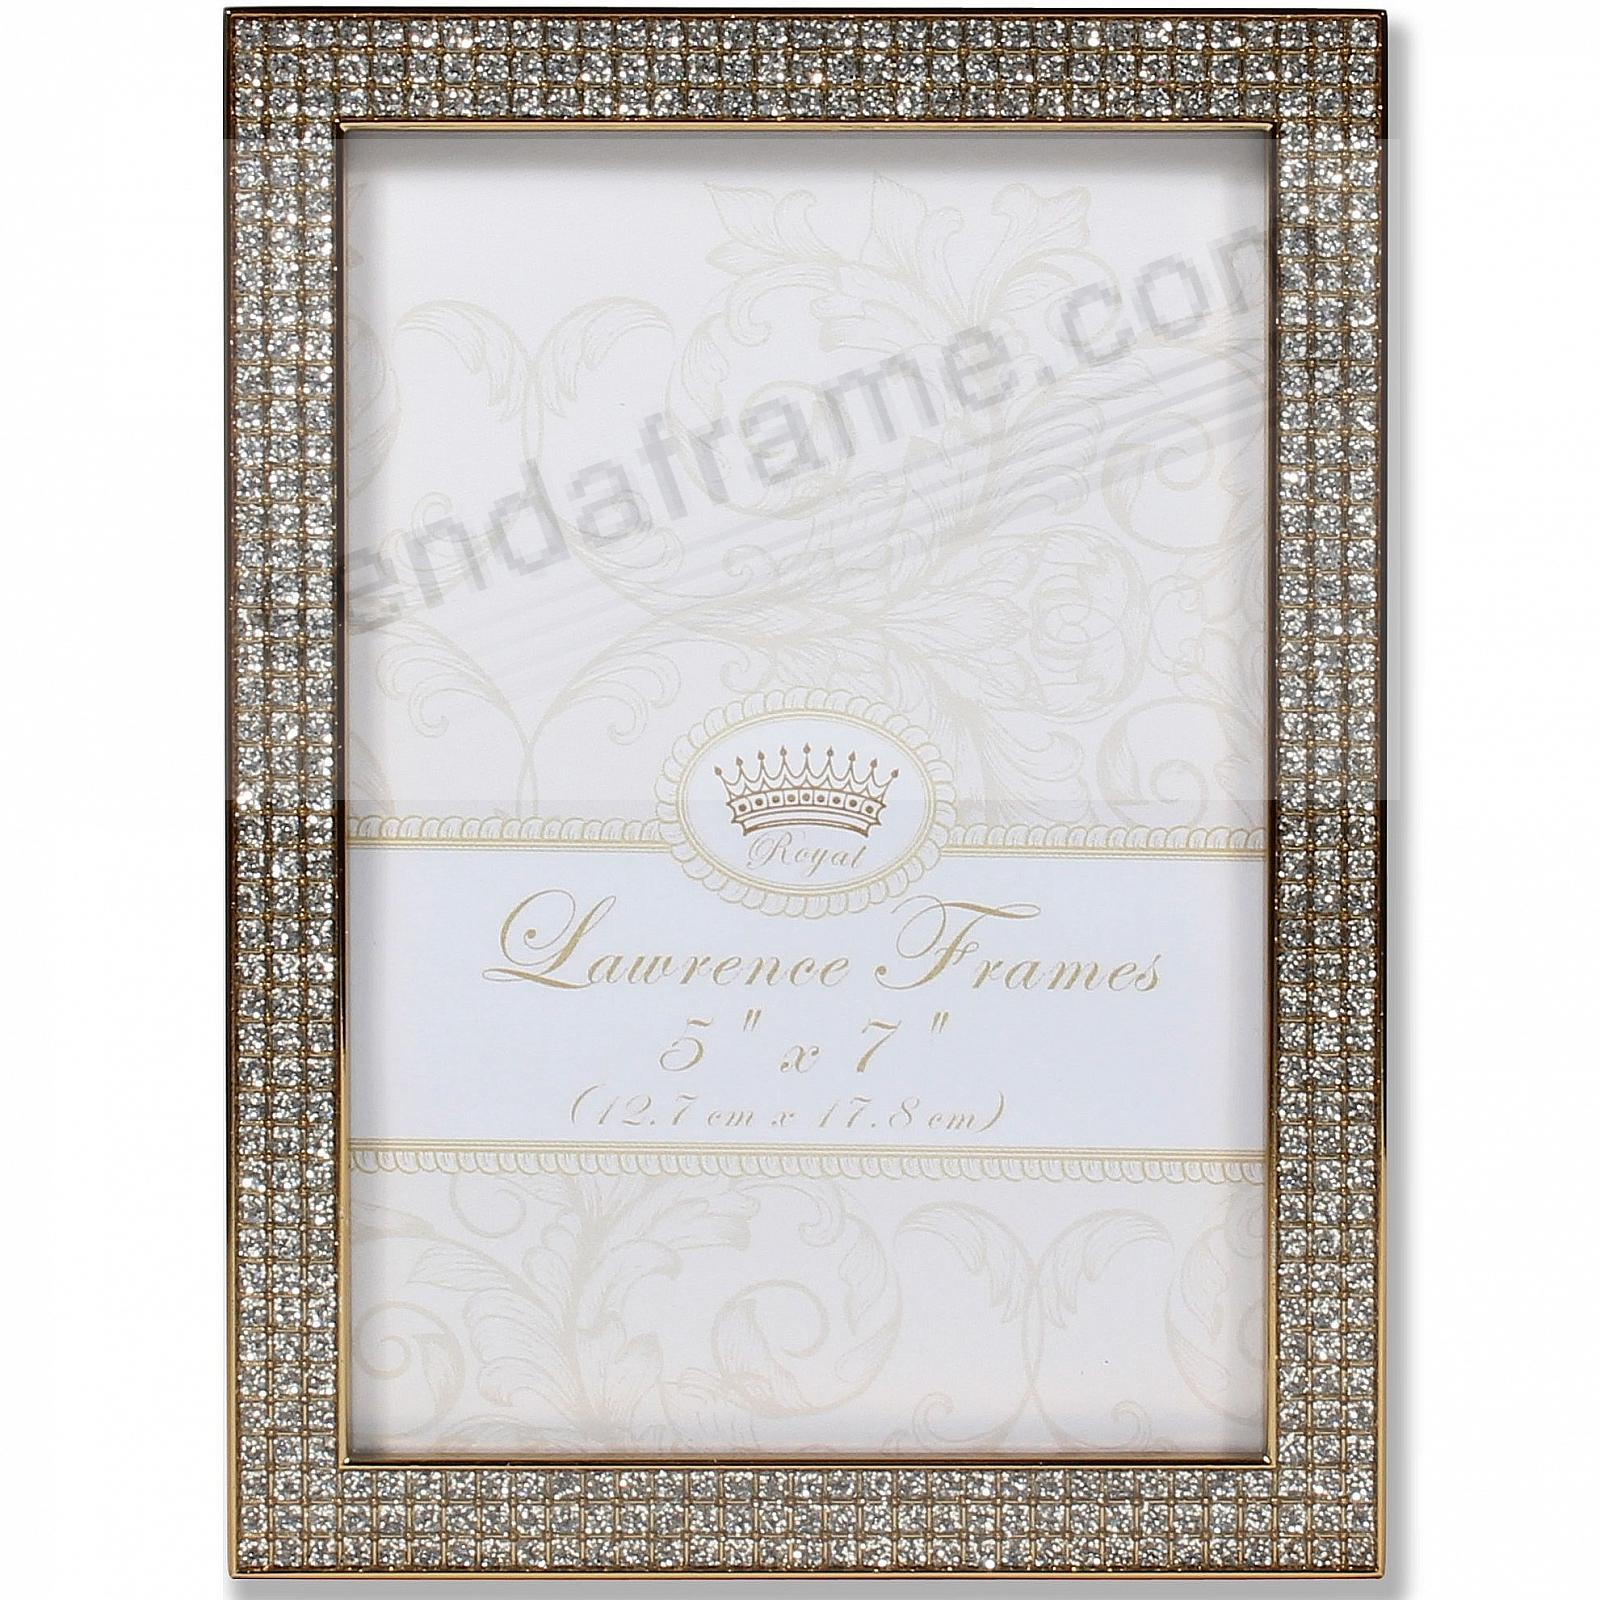 WHITE JEWELS GOLD/Crystal 5x7 frame